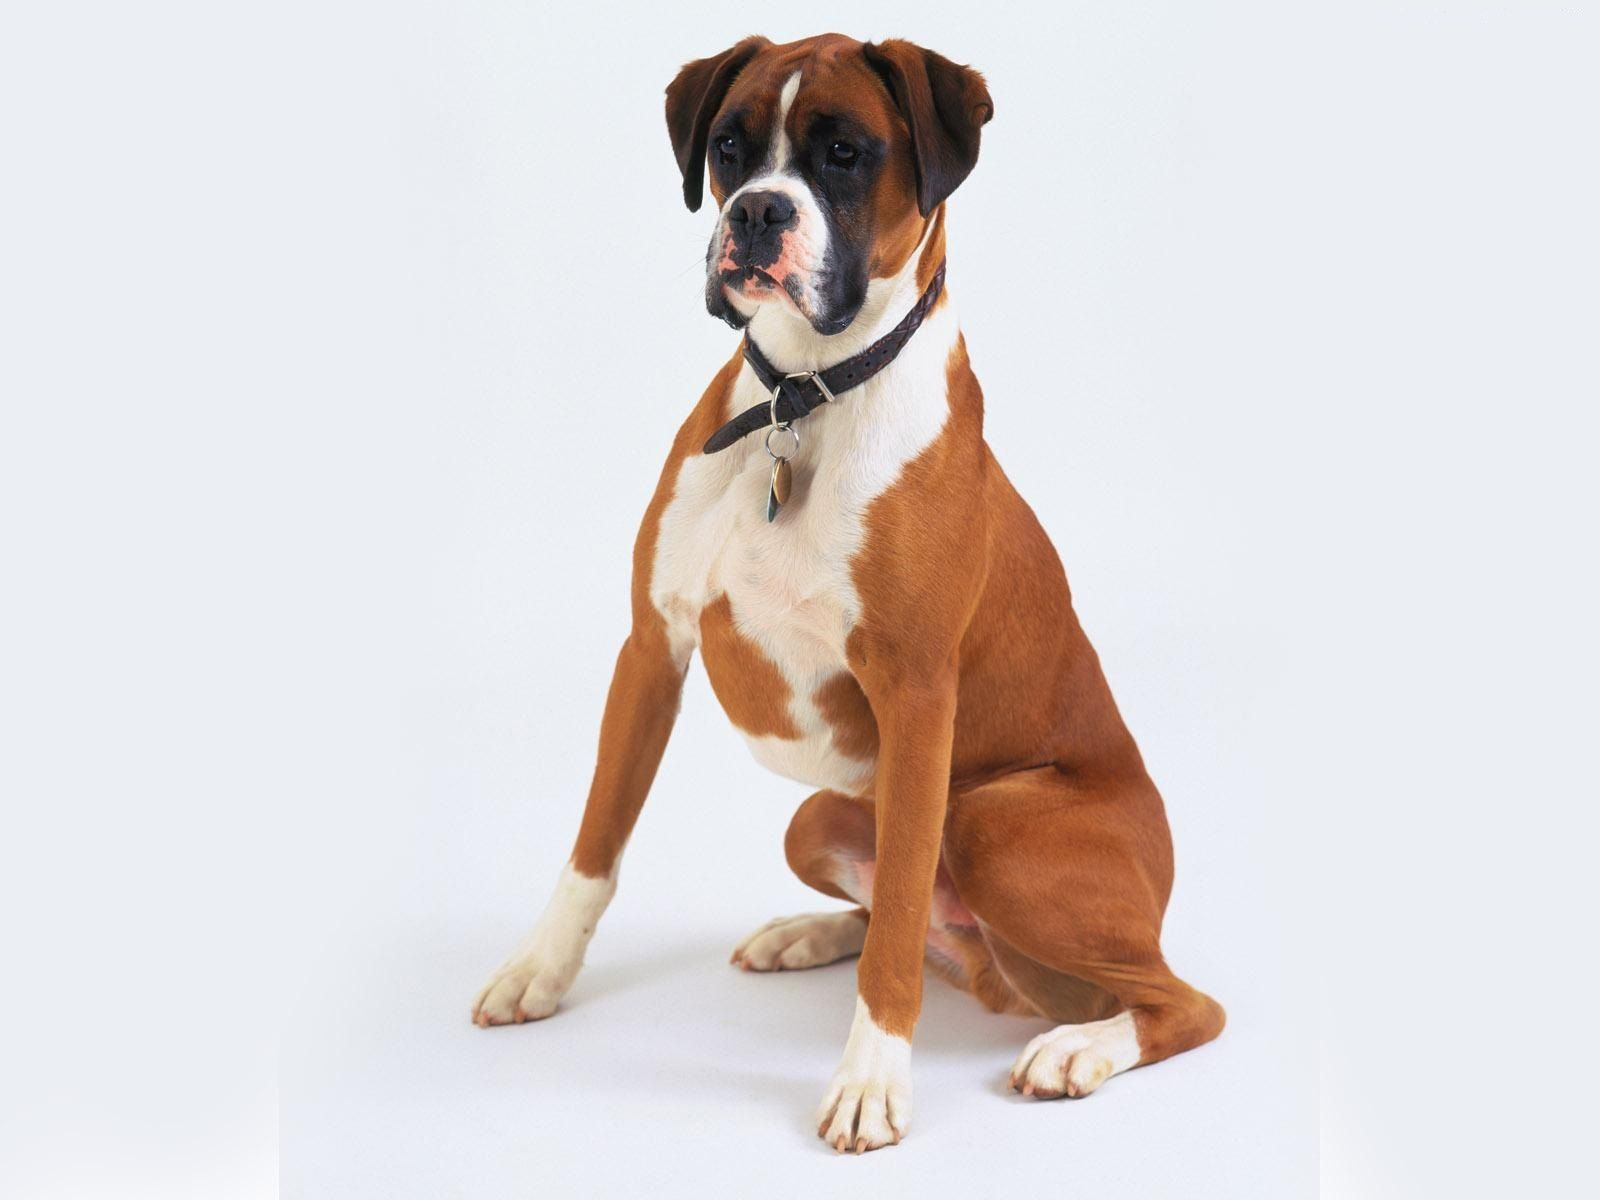 A Boxer Is A Breed Of Stocky Medium Sized Short Haired Dogs Bred In Germany Their Coat Is Smooth And Tight Fitting Boxer Dogs Boxer Puppies Loyal Dog Breeds